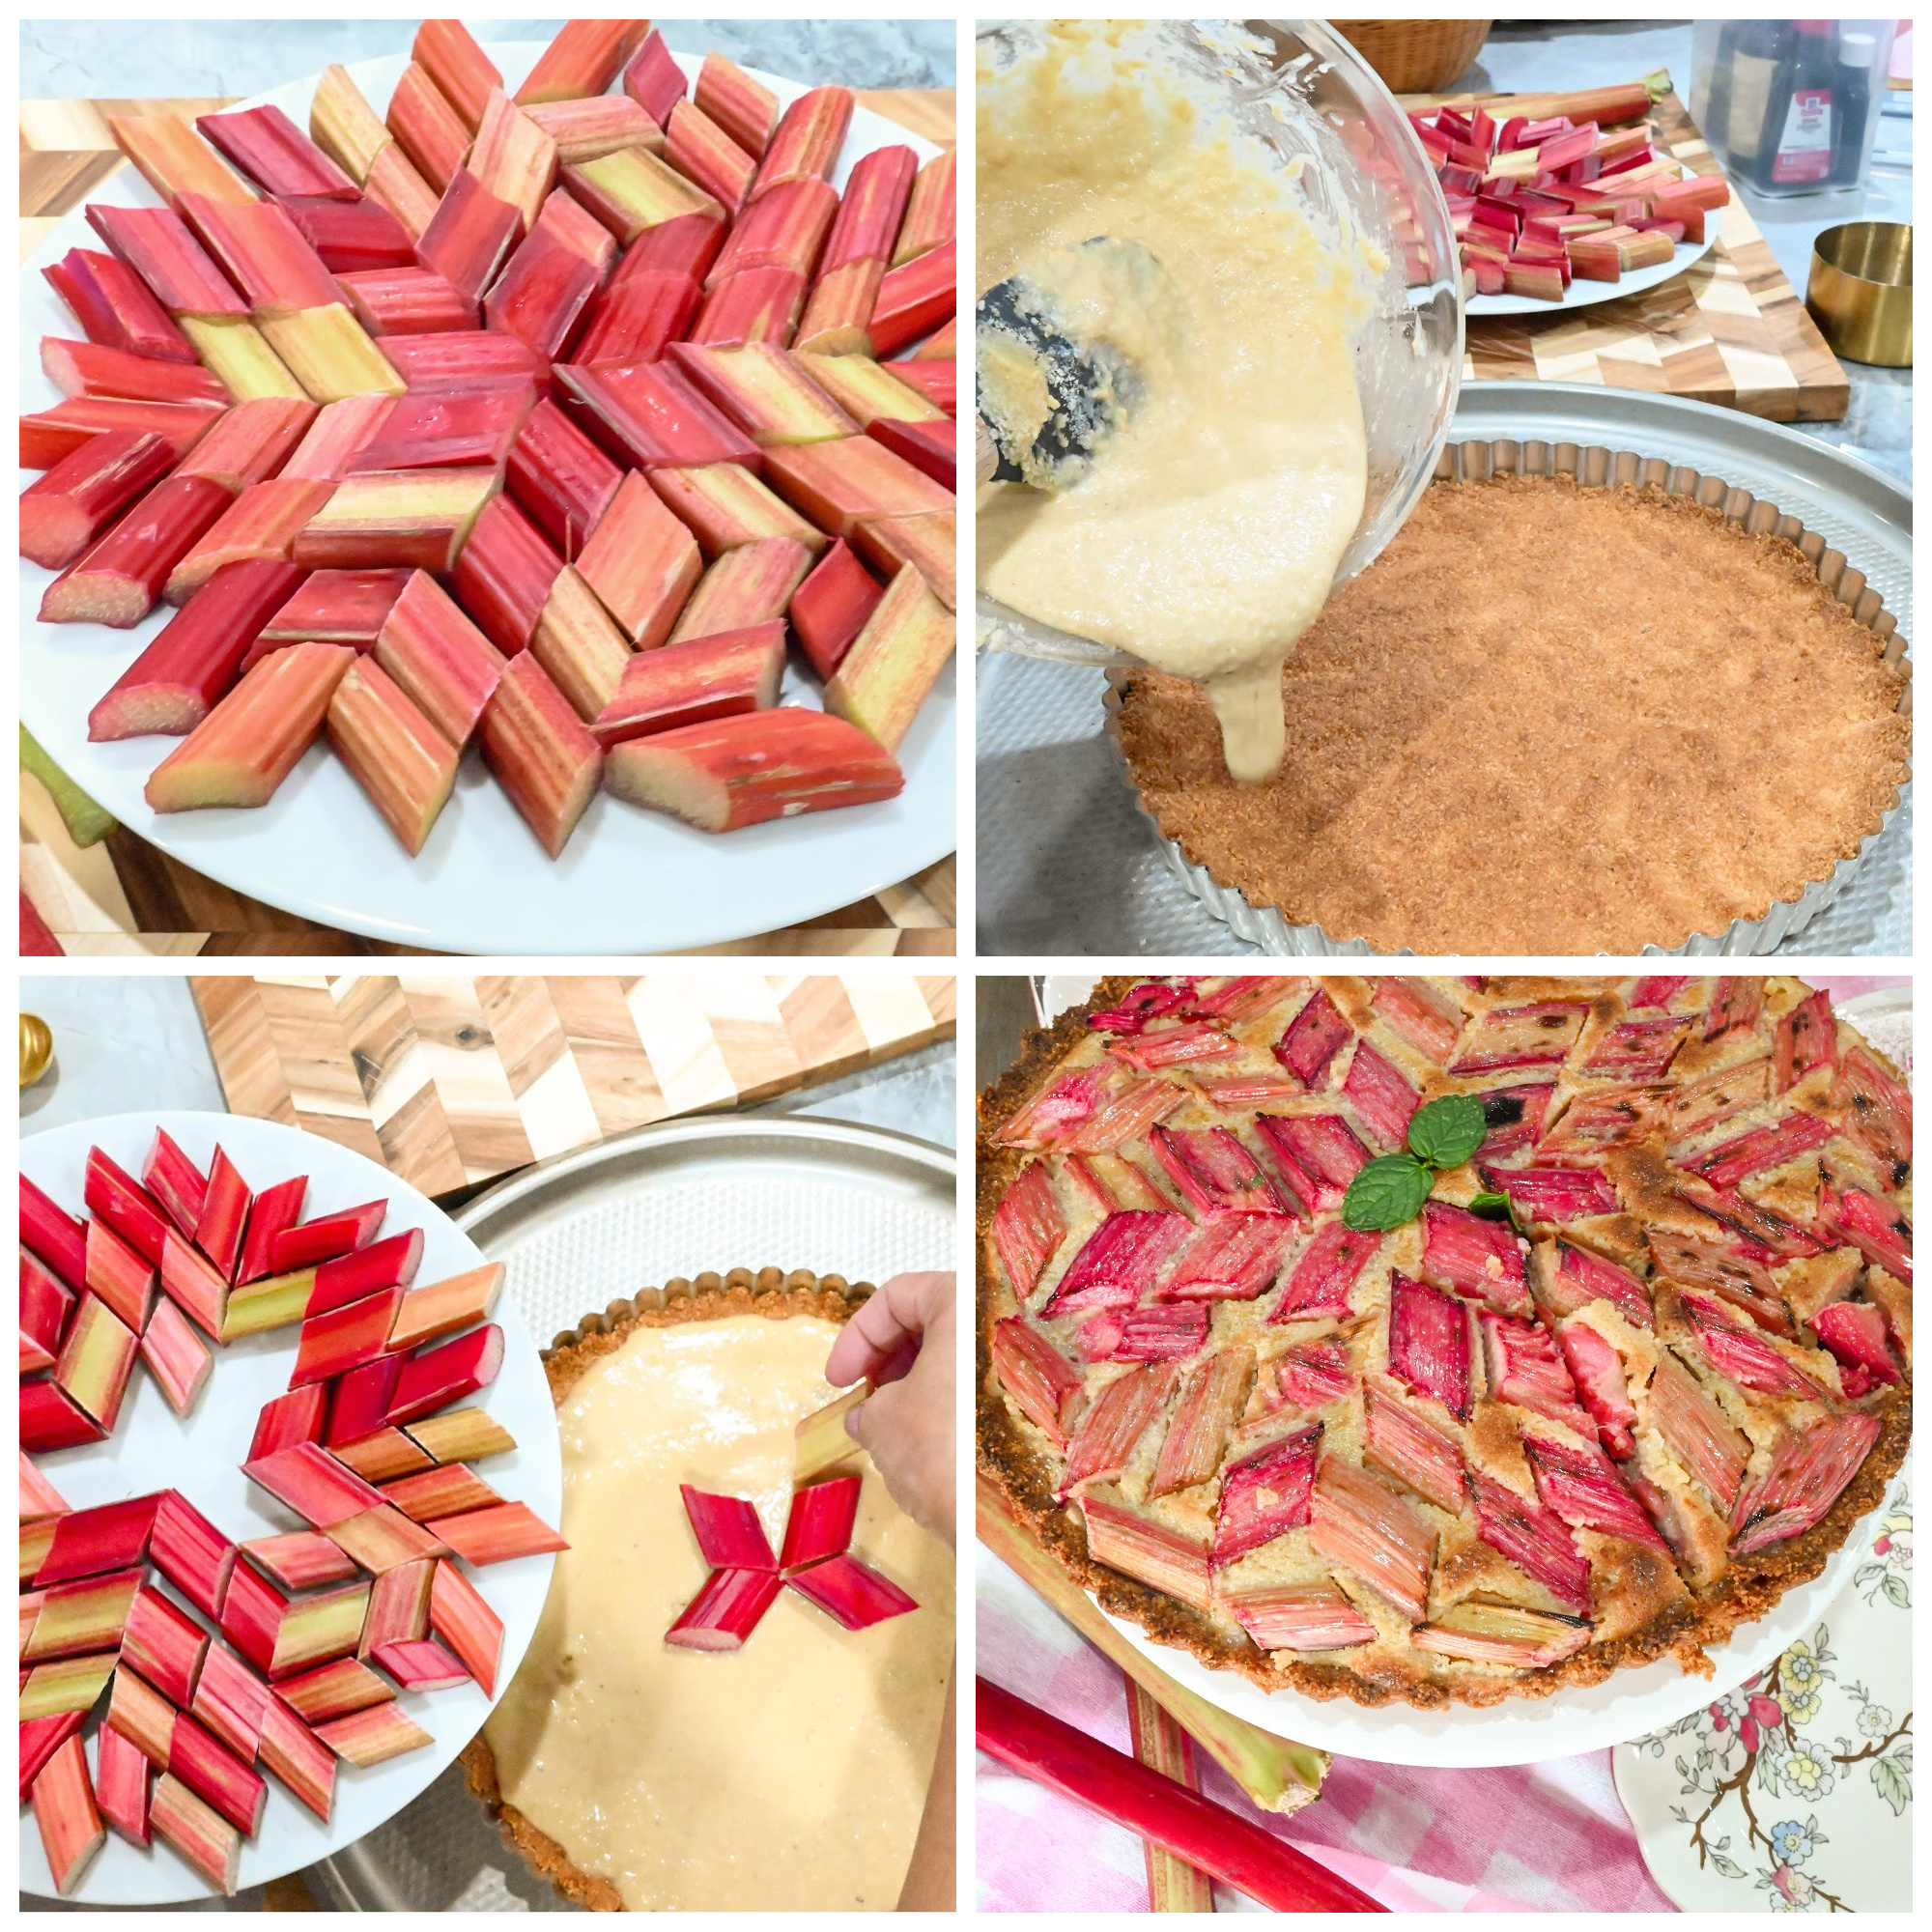 Keto rhubarb tart with frangipane filling process pictures